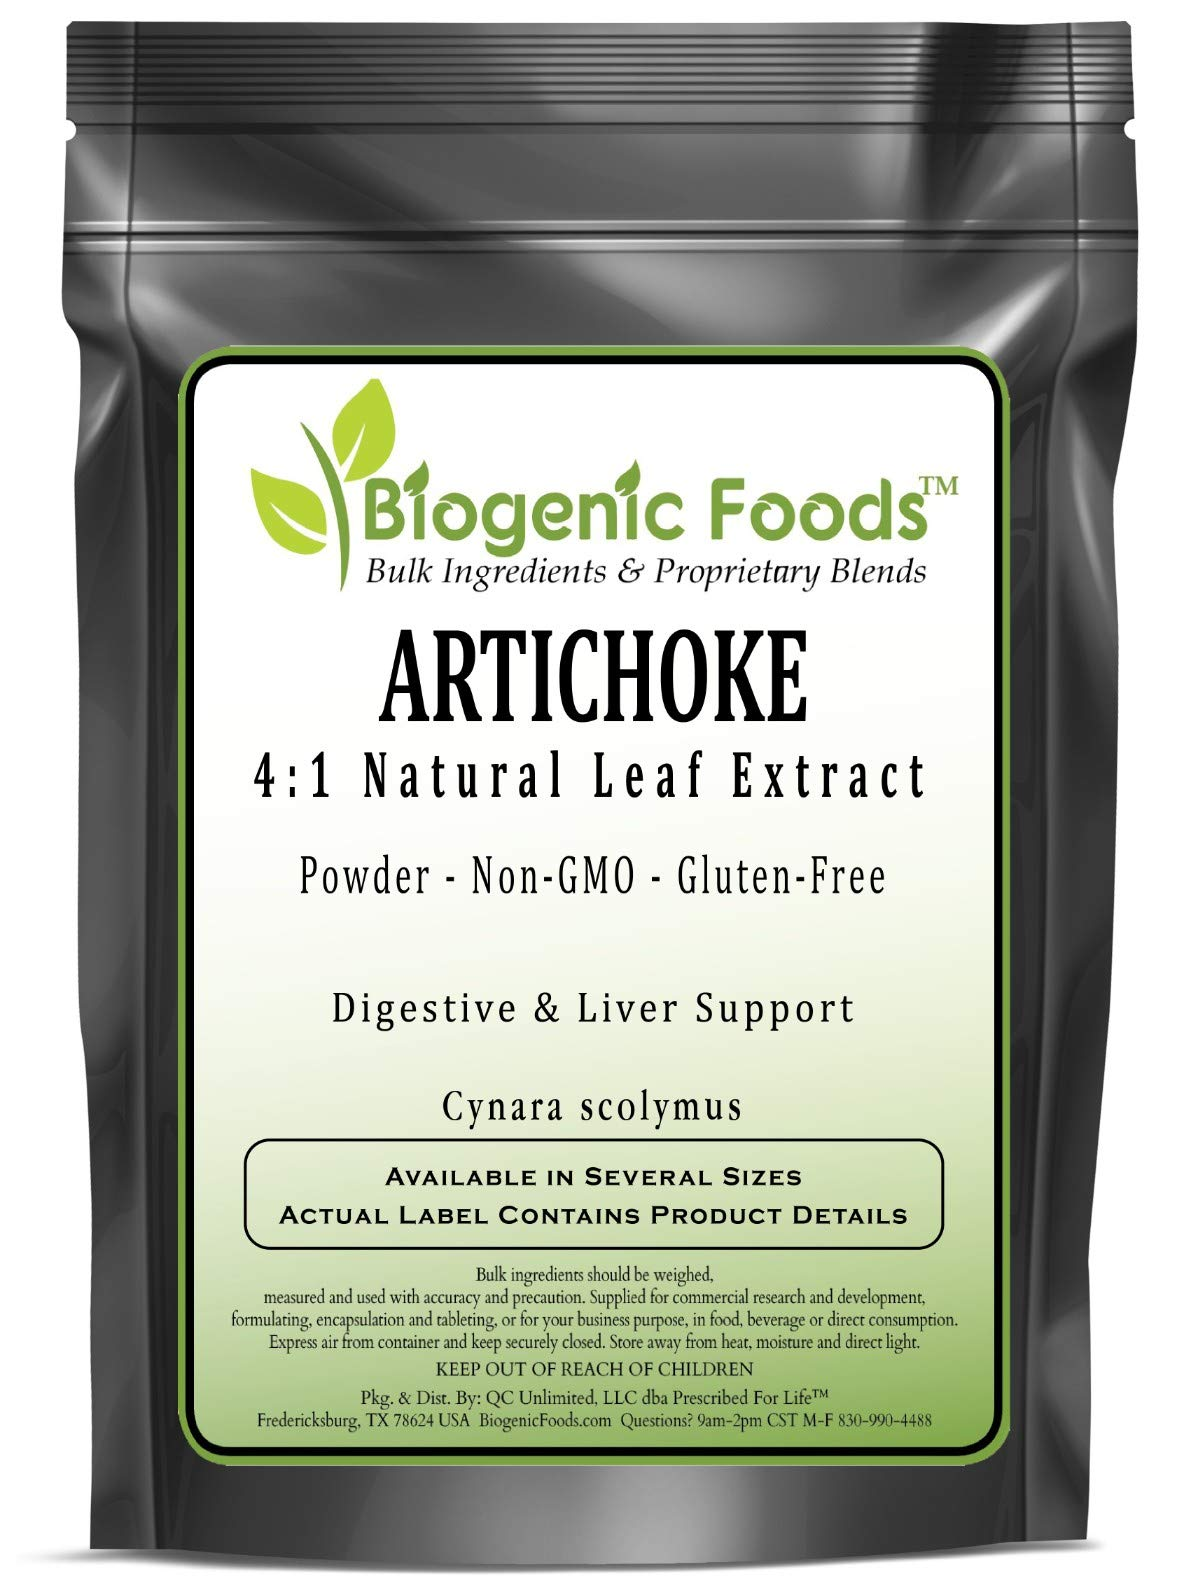 Artichoke - 4:1 Natural Leaf Extract Powder (Cynara scolymus), 2 kg